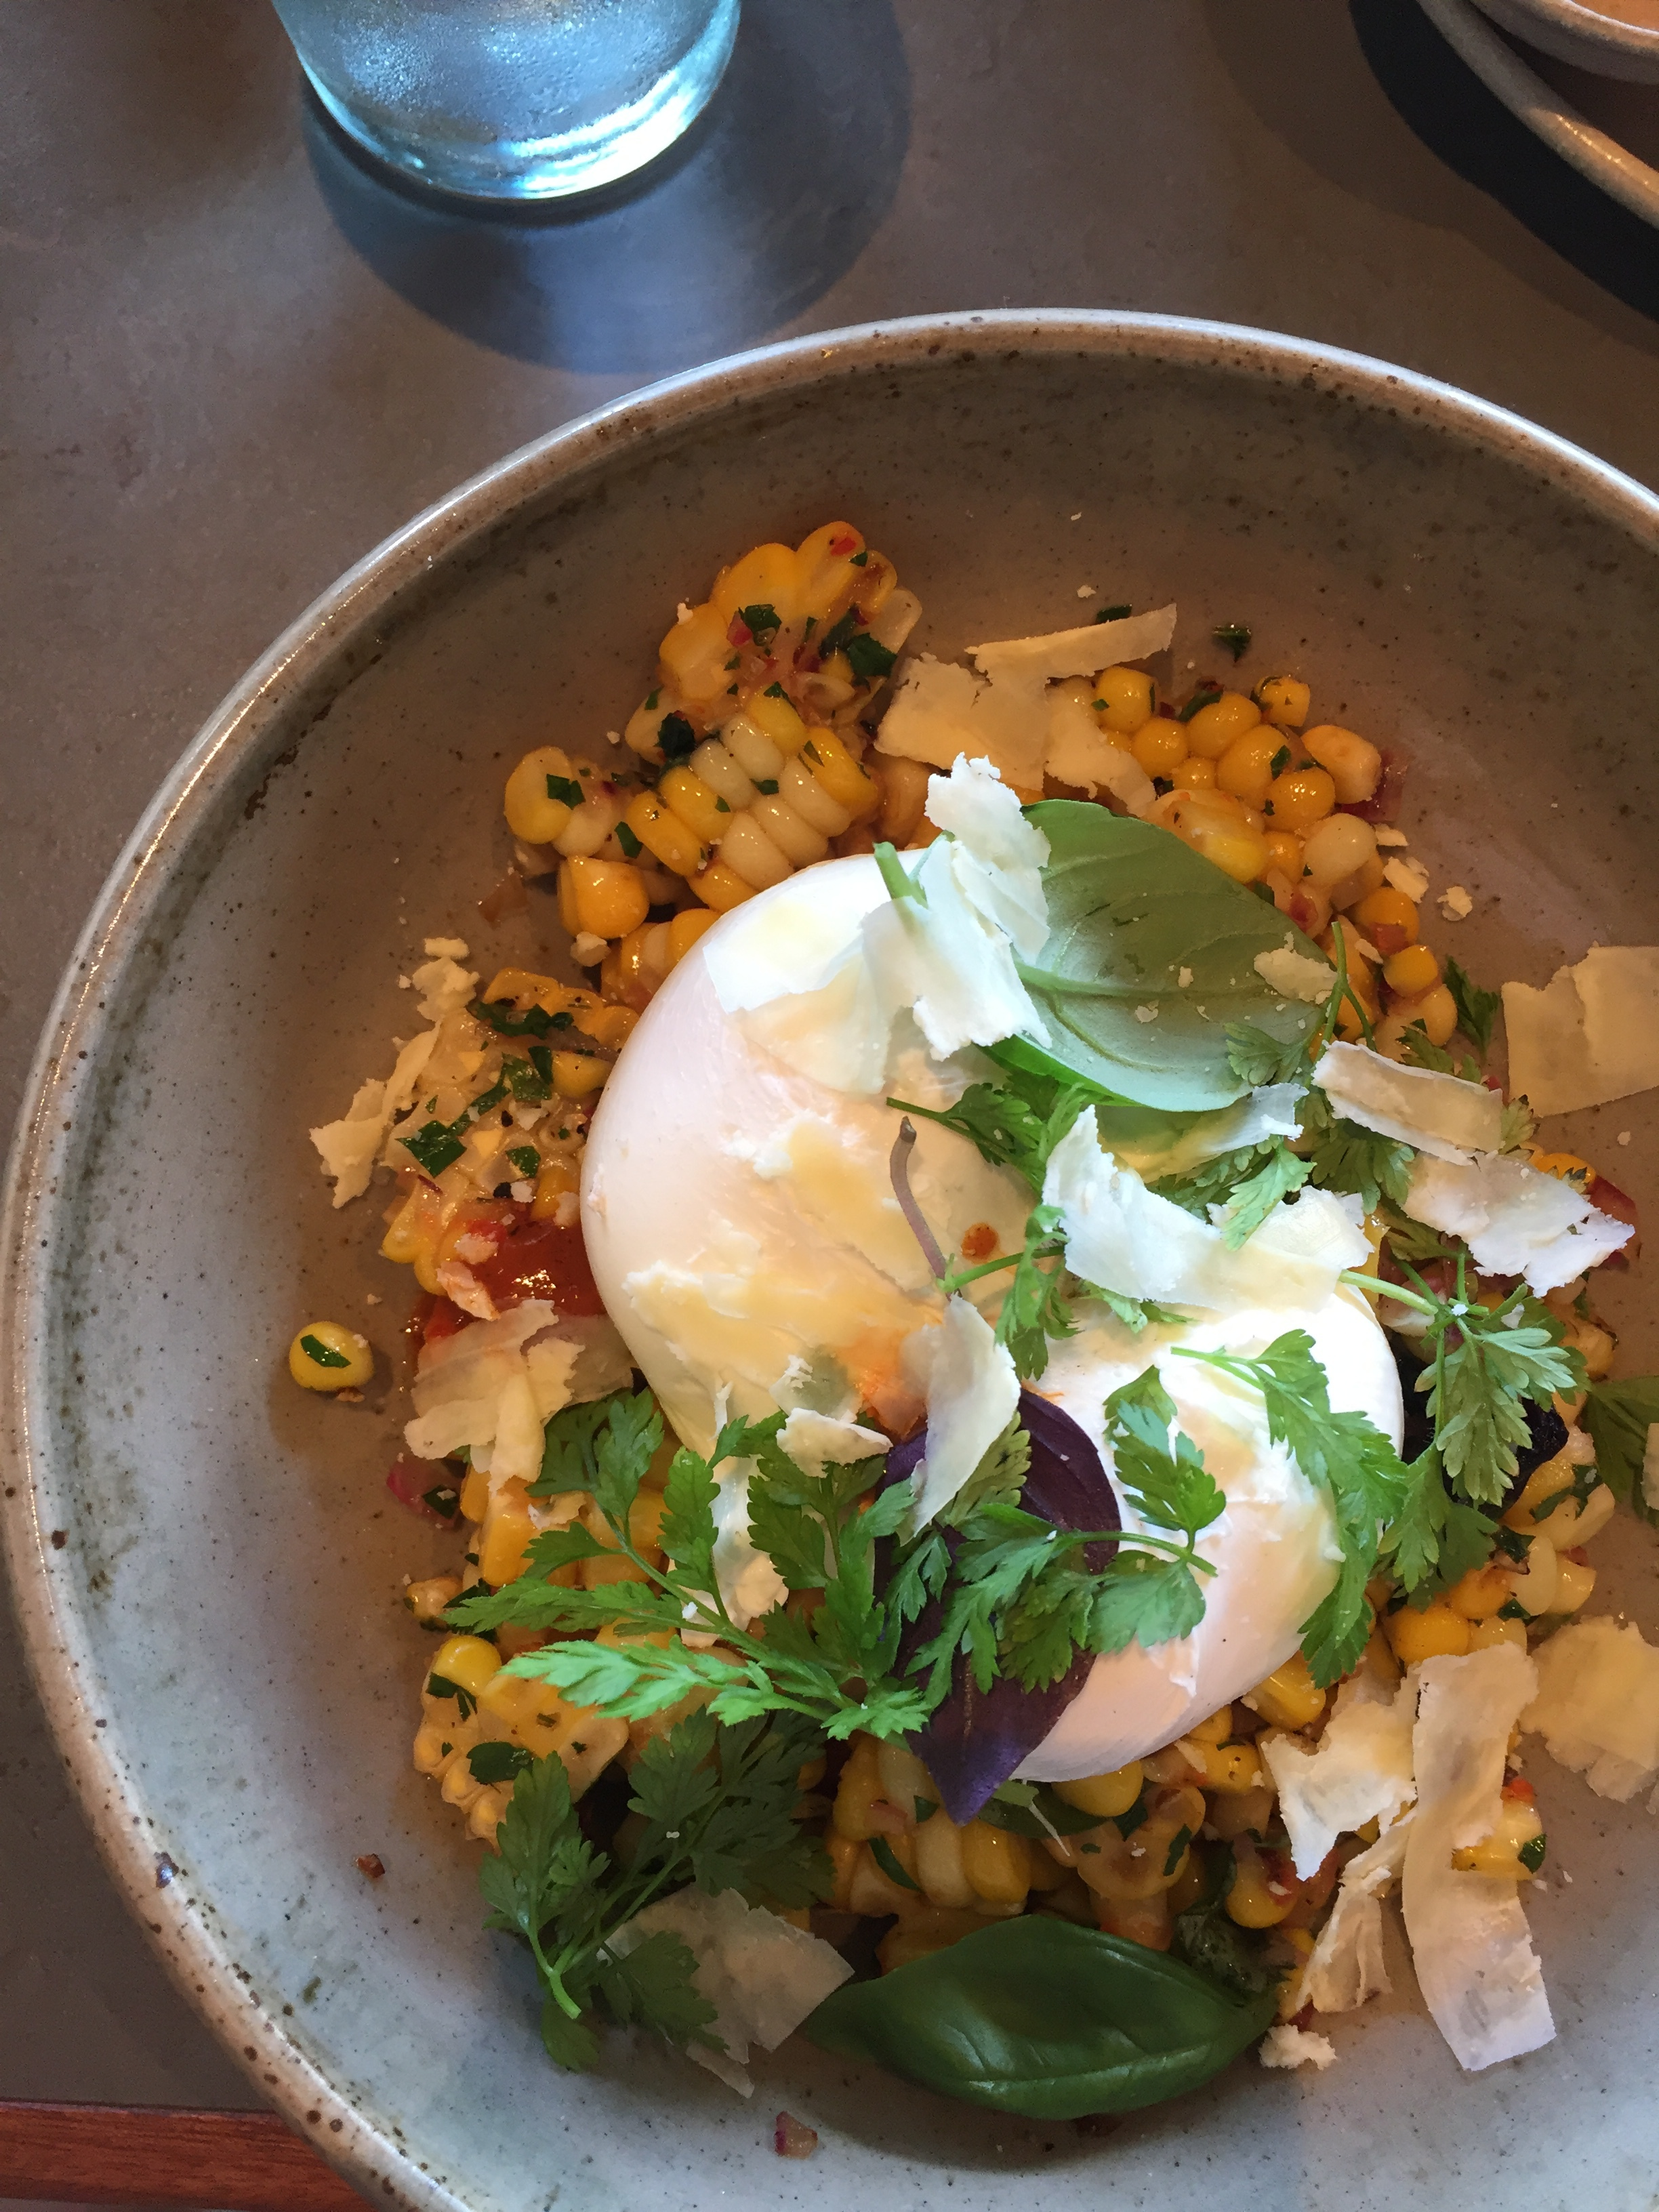 Brunch at Amano: poached eggs and chilies over fresh summer corn